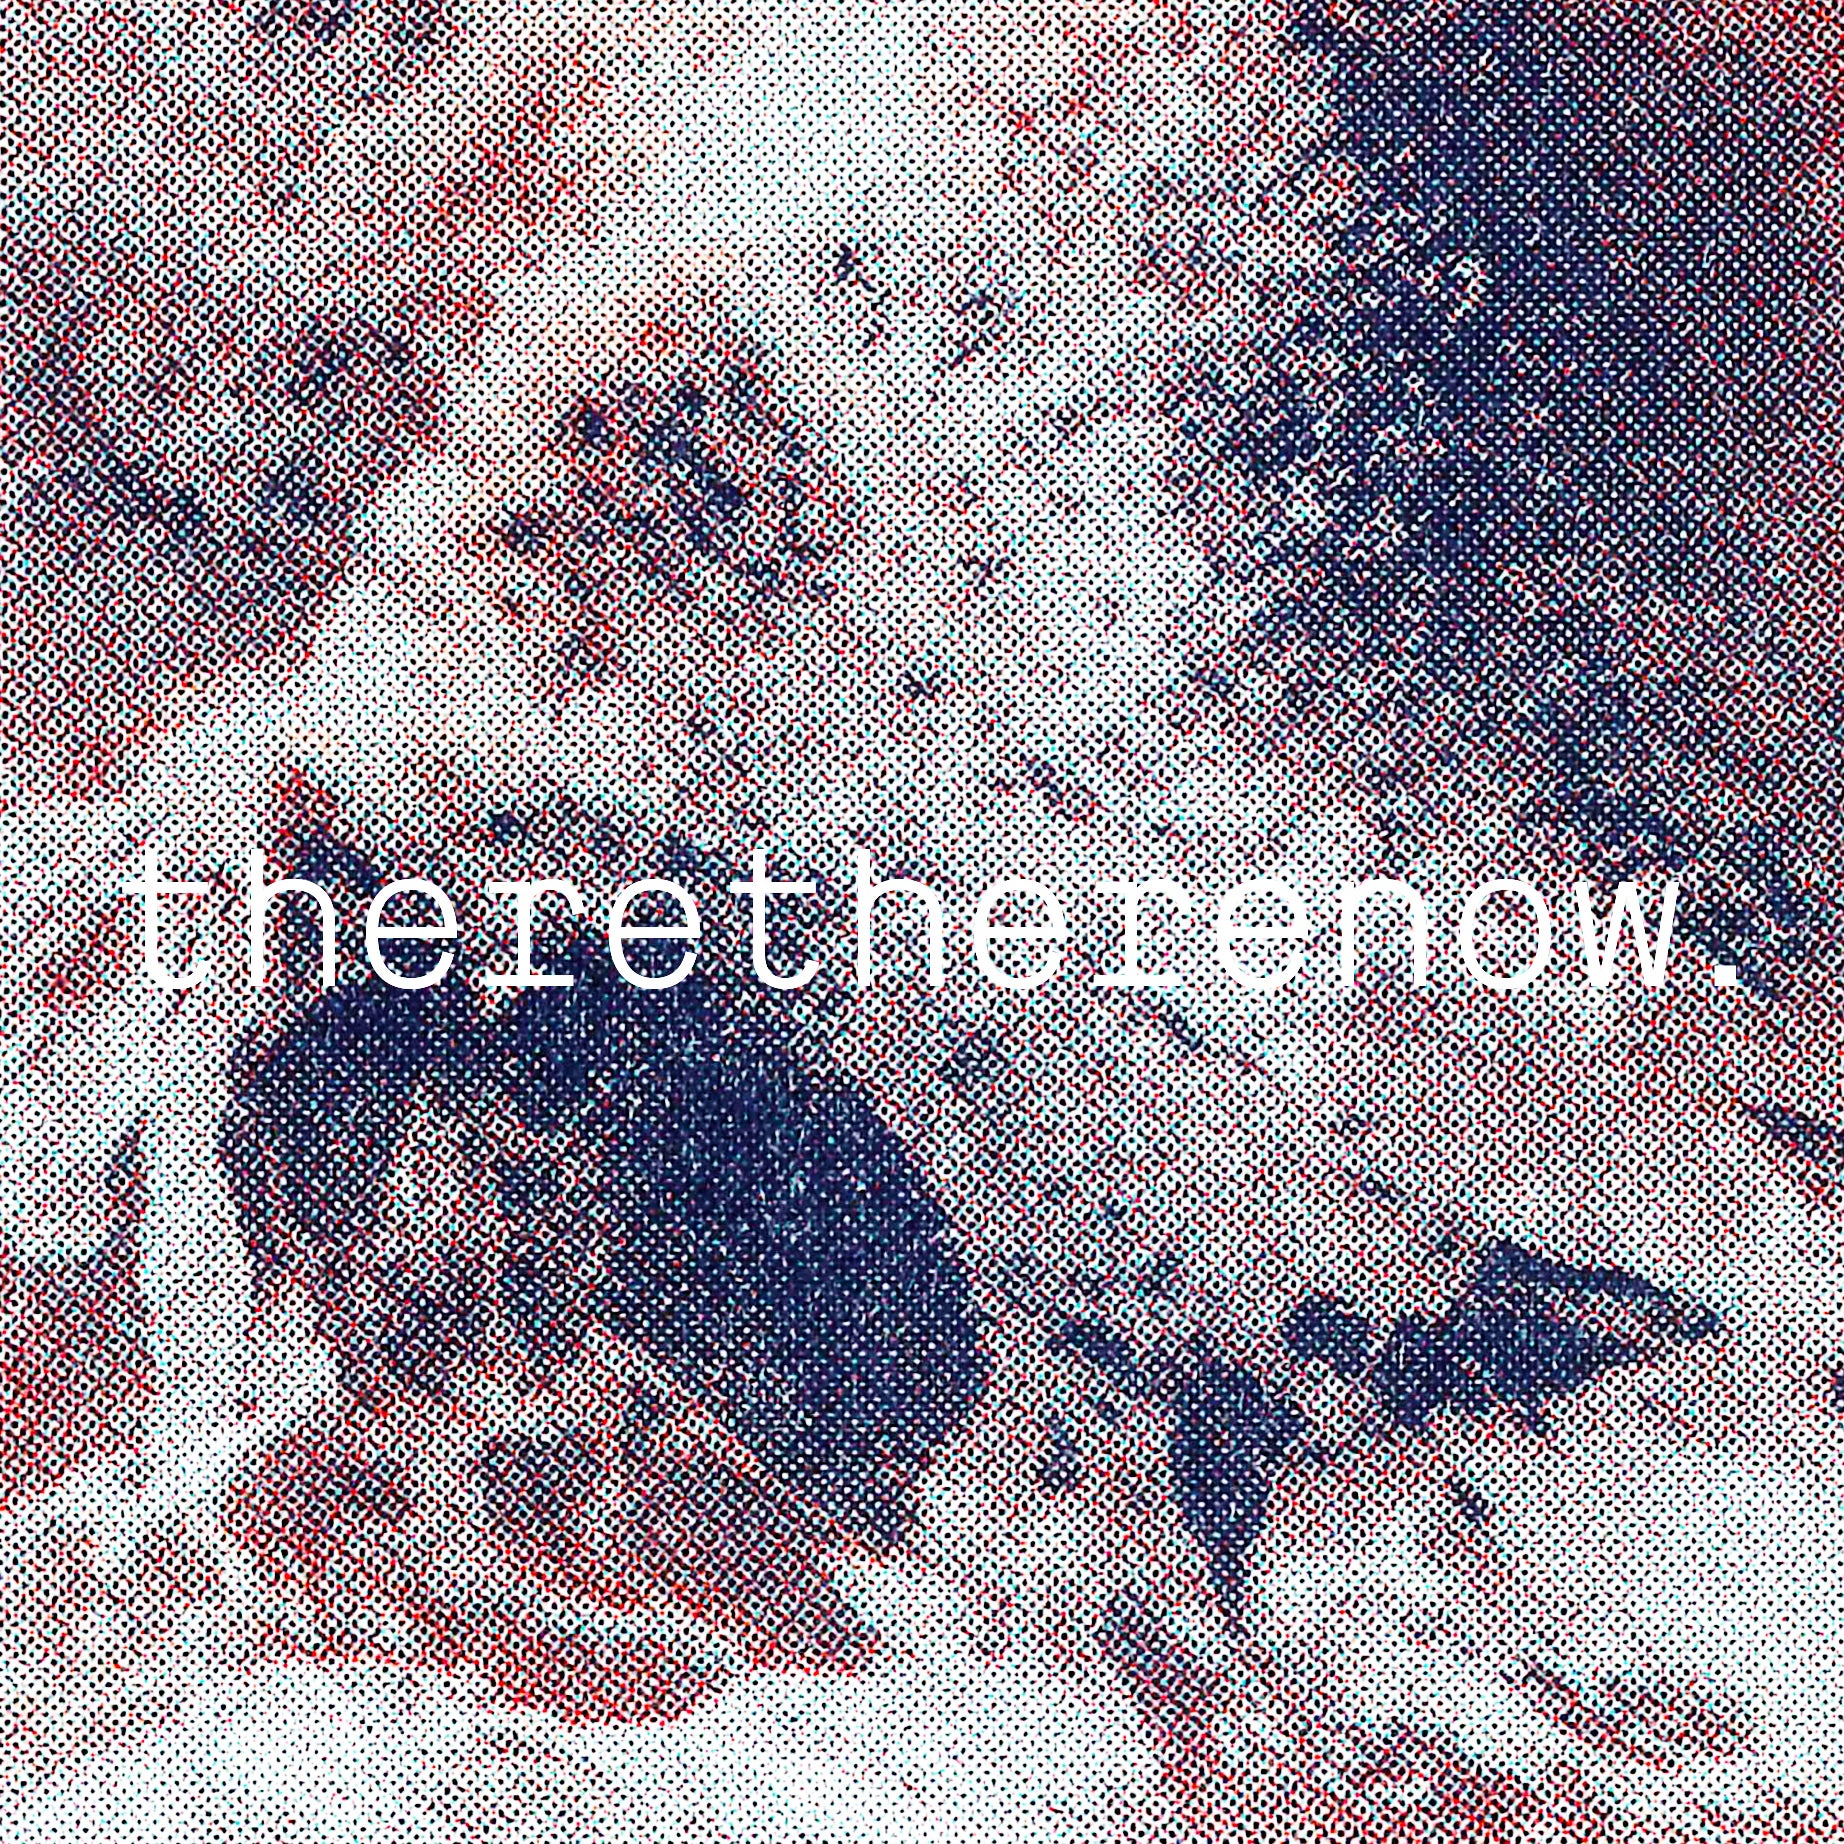 theretherenow.